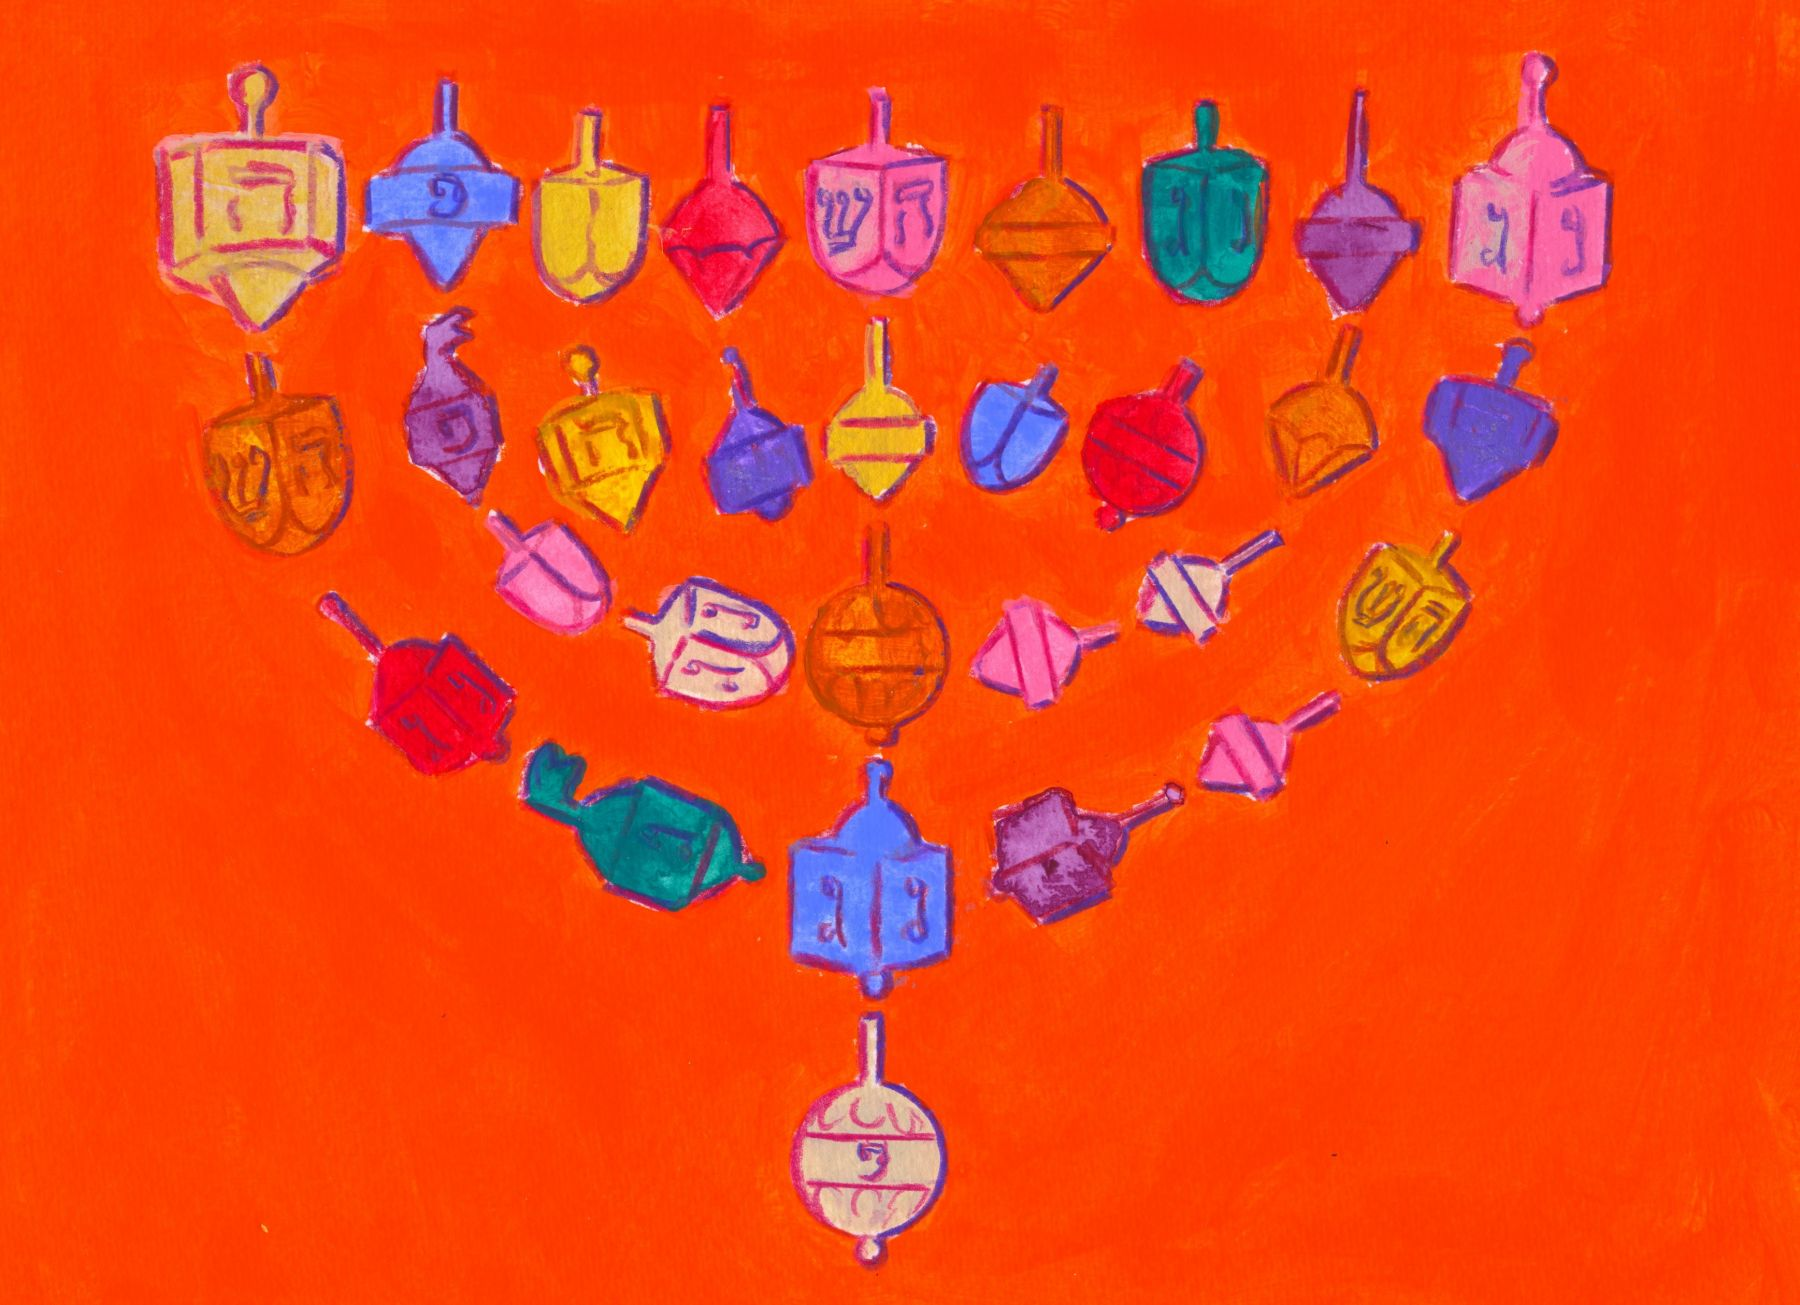 Mark Podwal, Dreidel Menorah, 2013, acrylic and colored pencil on paper, 9 x 12 inches